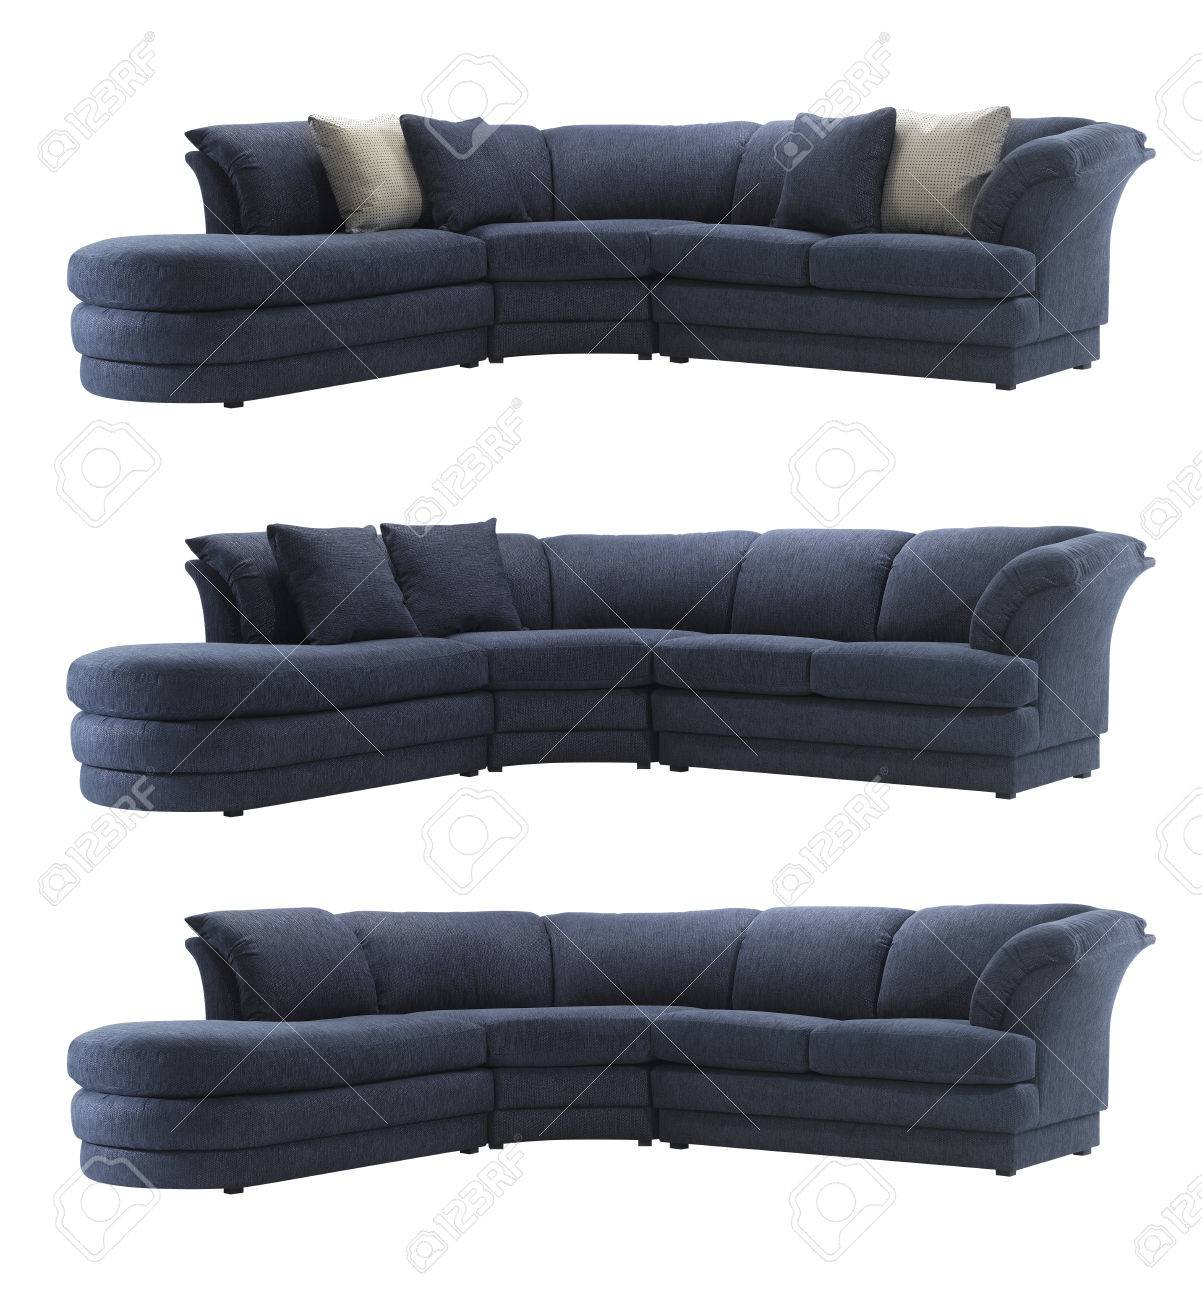 Super Big Blue Sofa With And Without Pillows Isolated On White Background Ocoug Best Dining Table And Chair Ideas Images Ocougorg